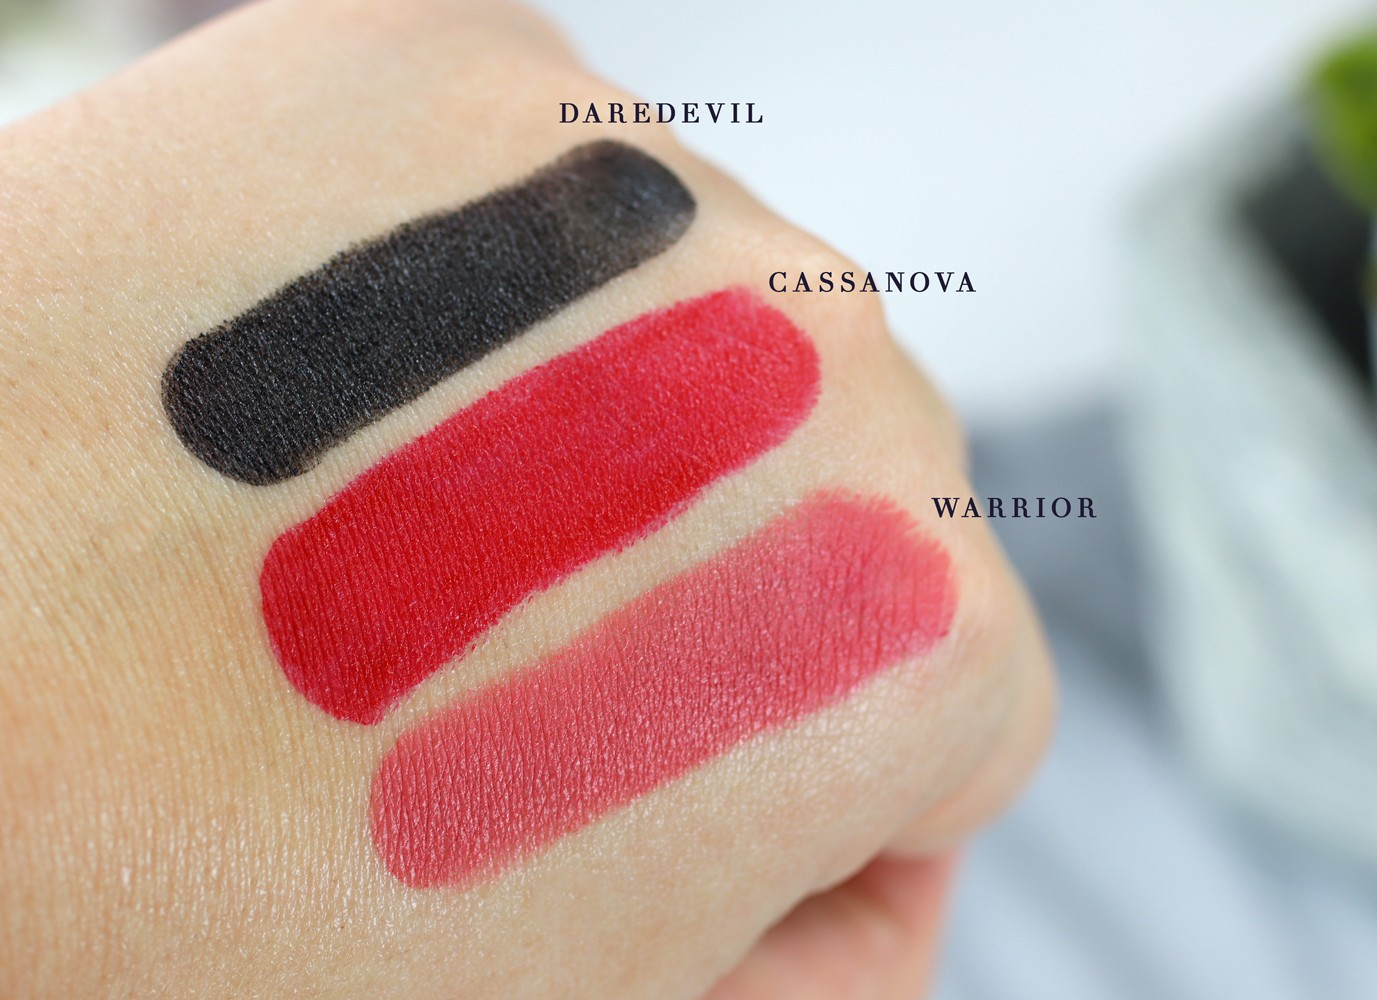 Luscious Cosmetics Heartbreaker Creamy Matte Lipstick Swatches - Luscious Cosmetics Review and Try On by popular LA cruelty free beauty blogger My Beauty Bunny